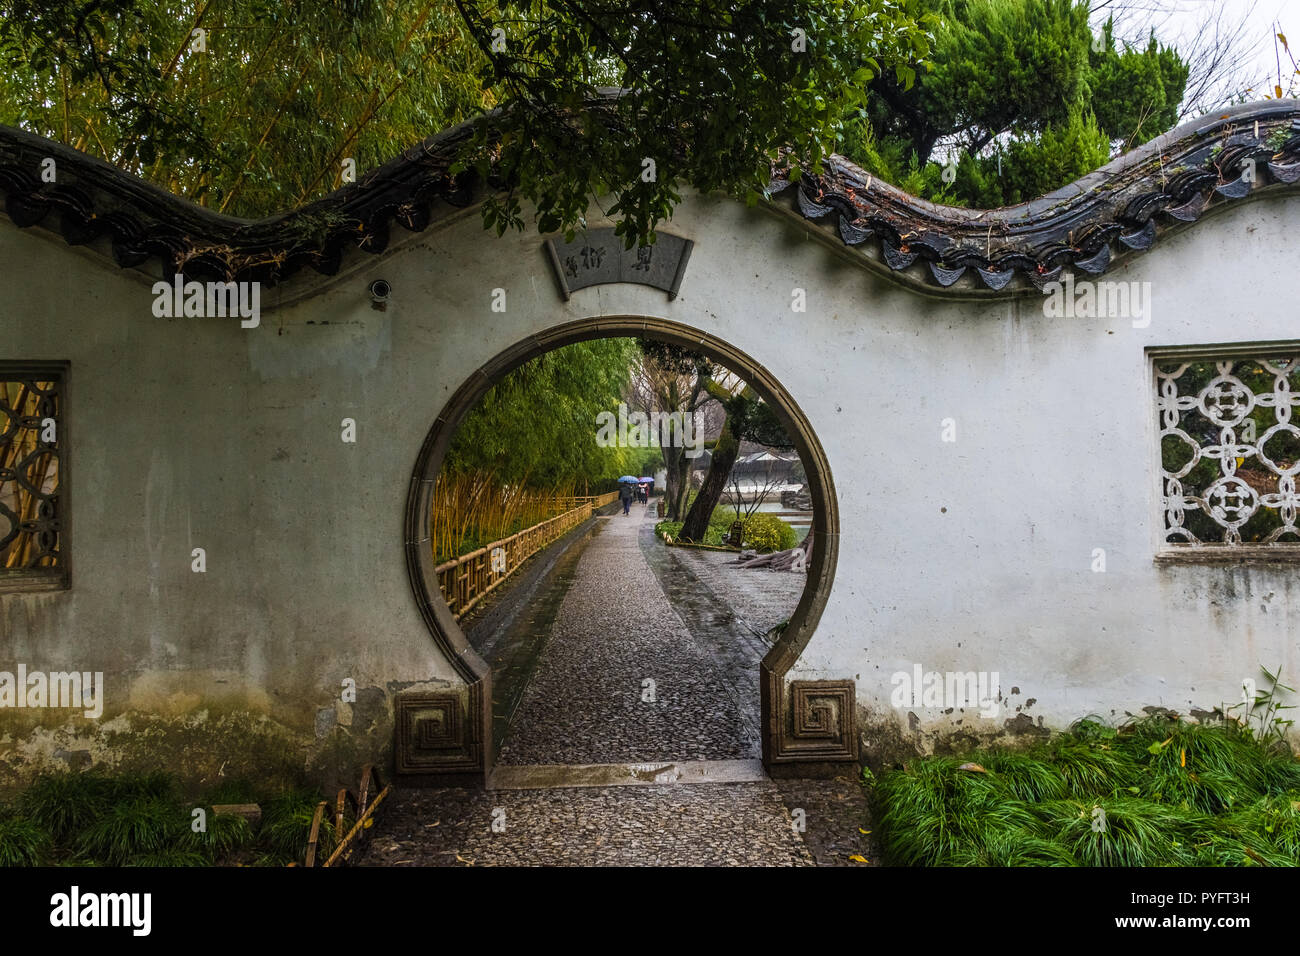 Gate Of The Humble Administrator Garden Of Suzhou China Stock